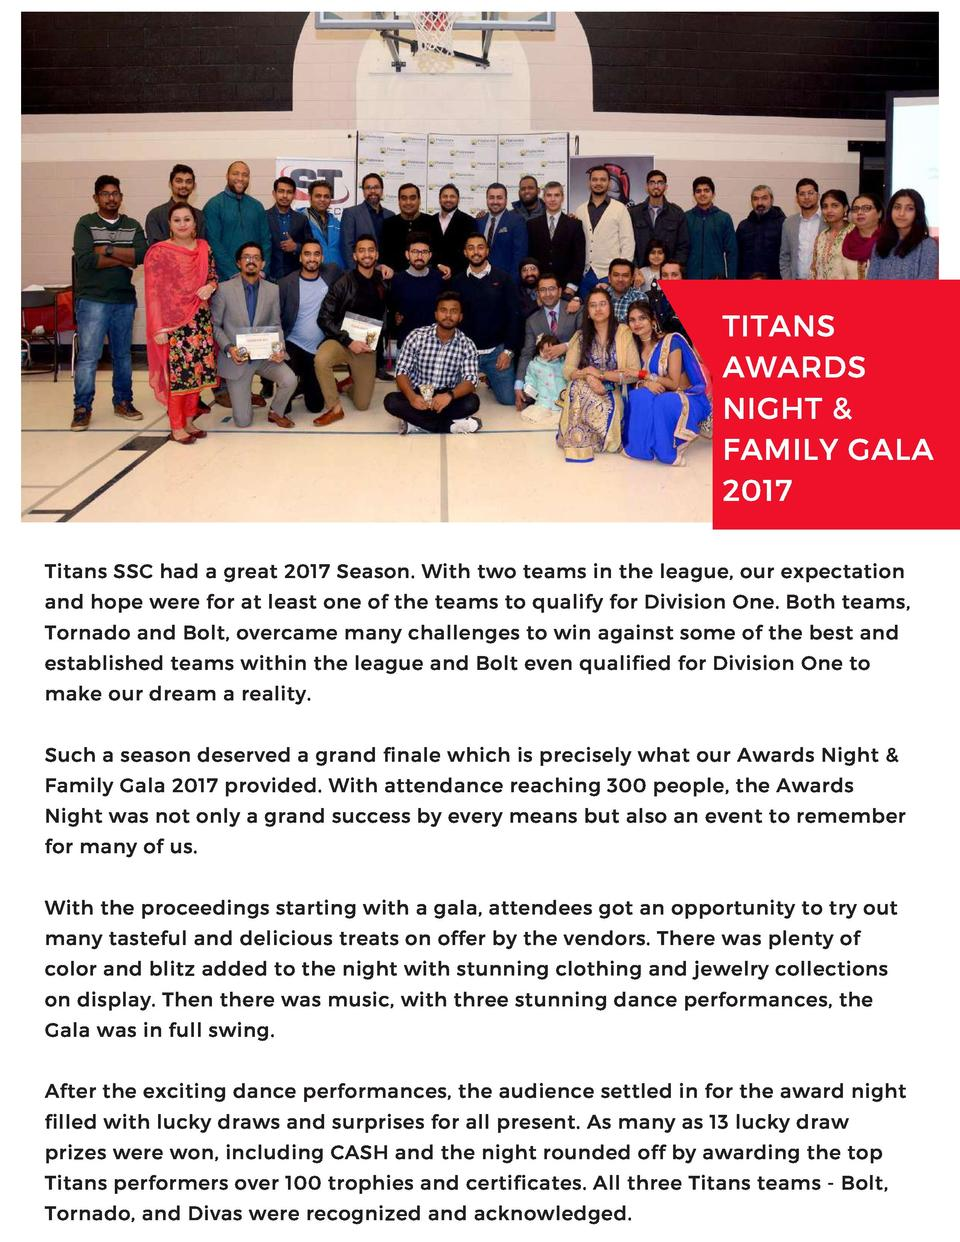 TITANS AWARDS NIGHT   FAMILY GALA 2017 Titans SSC had a great 2017 Season. With two teams in the league, our expectation a...